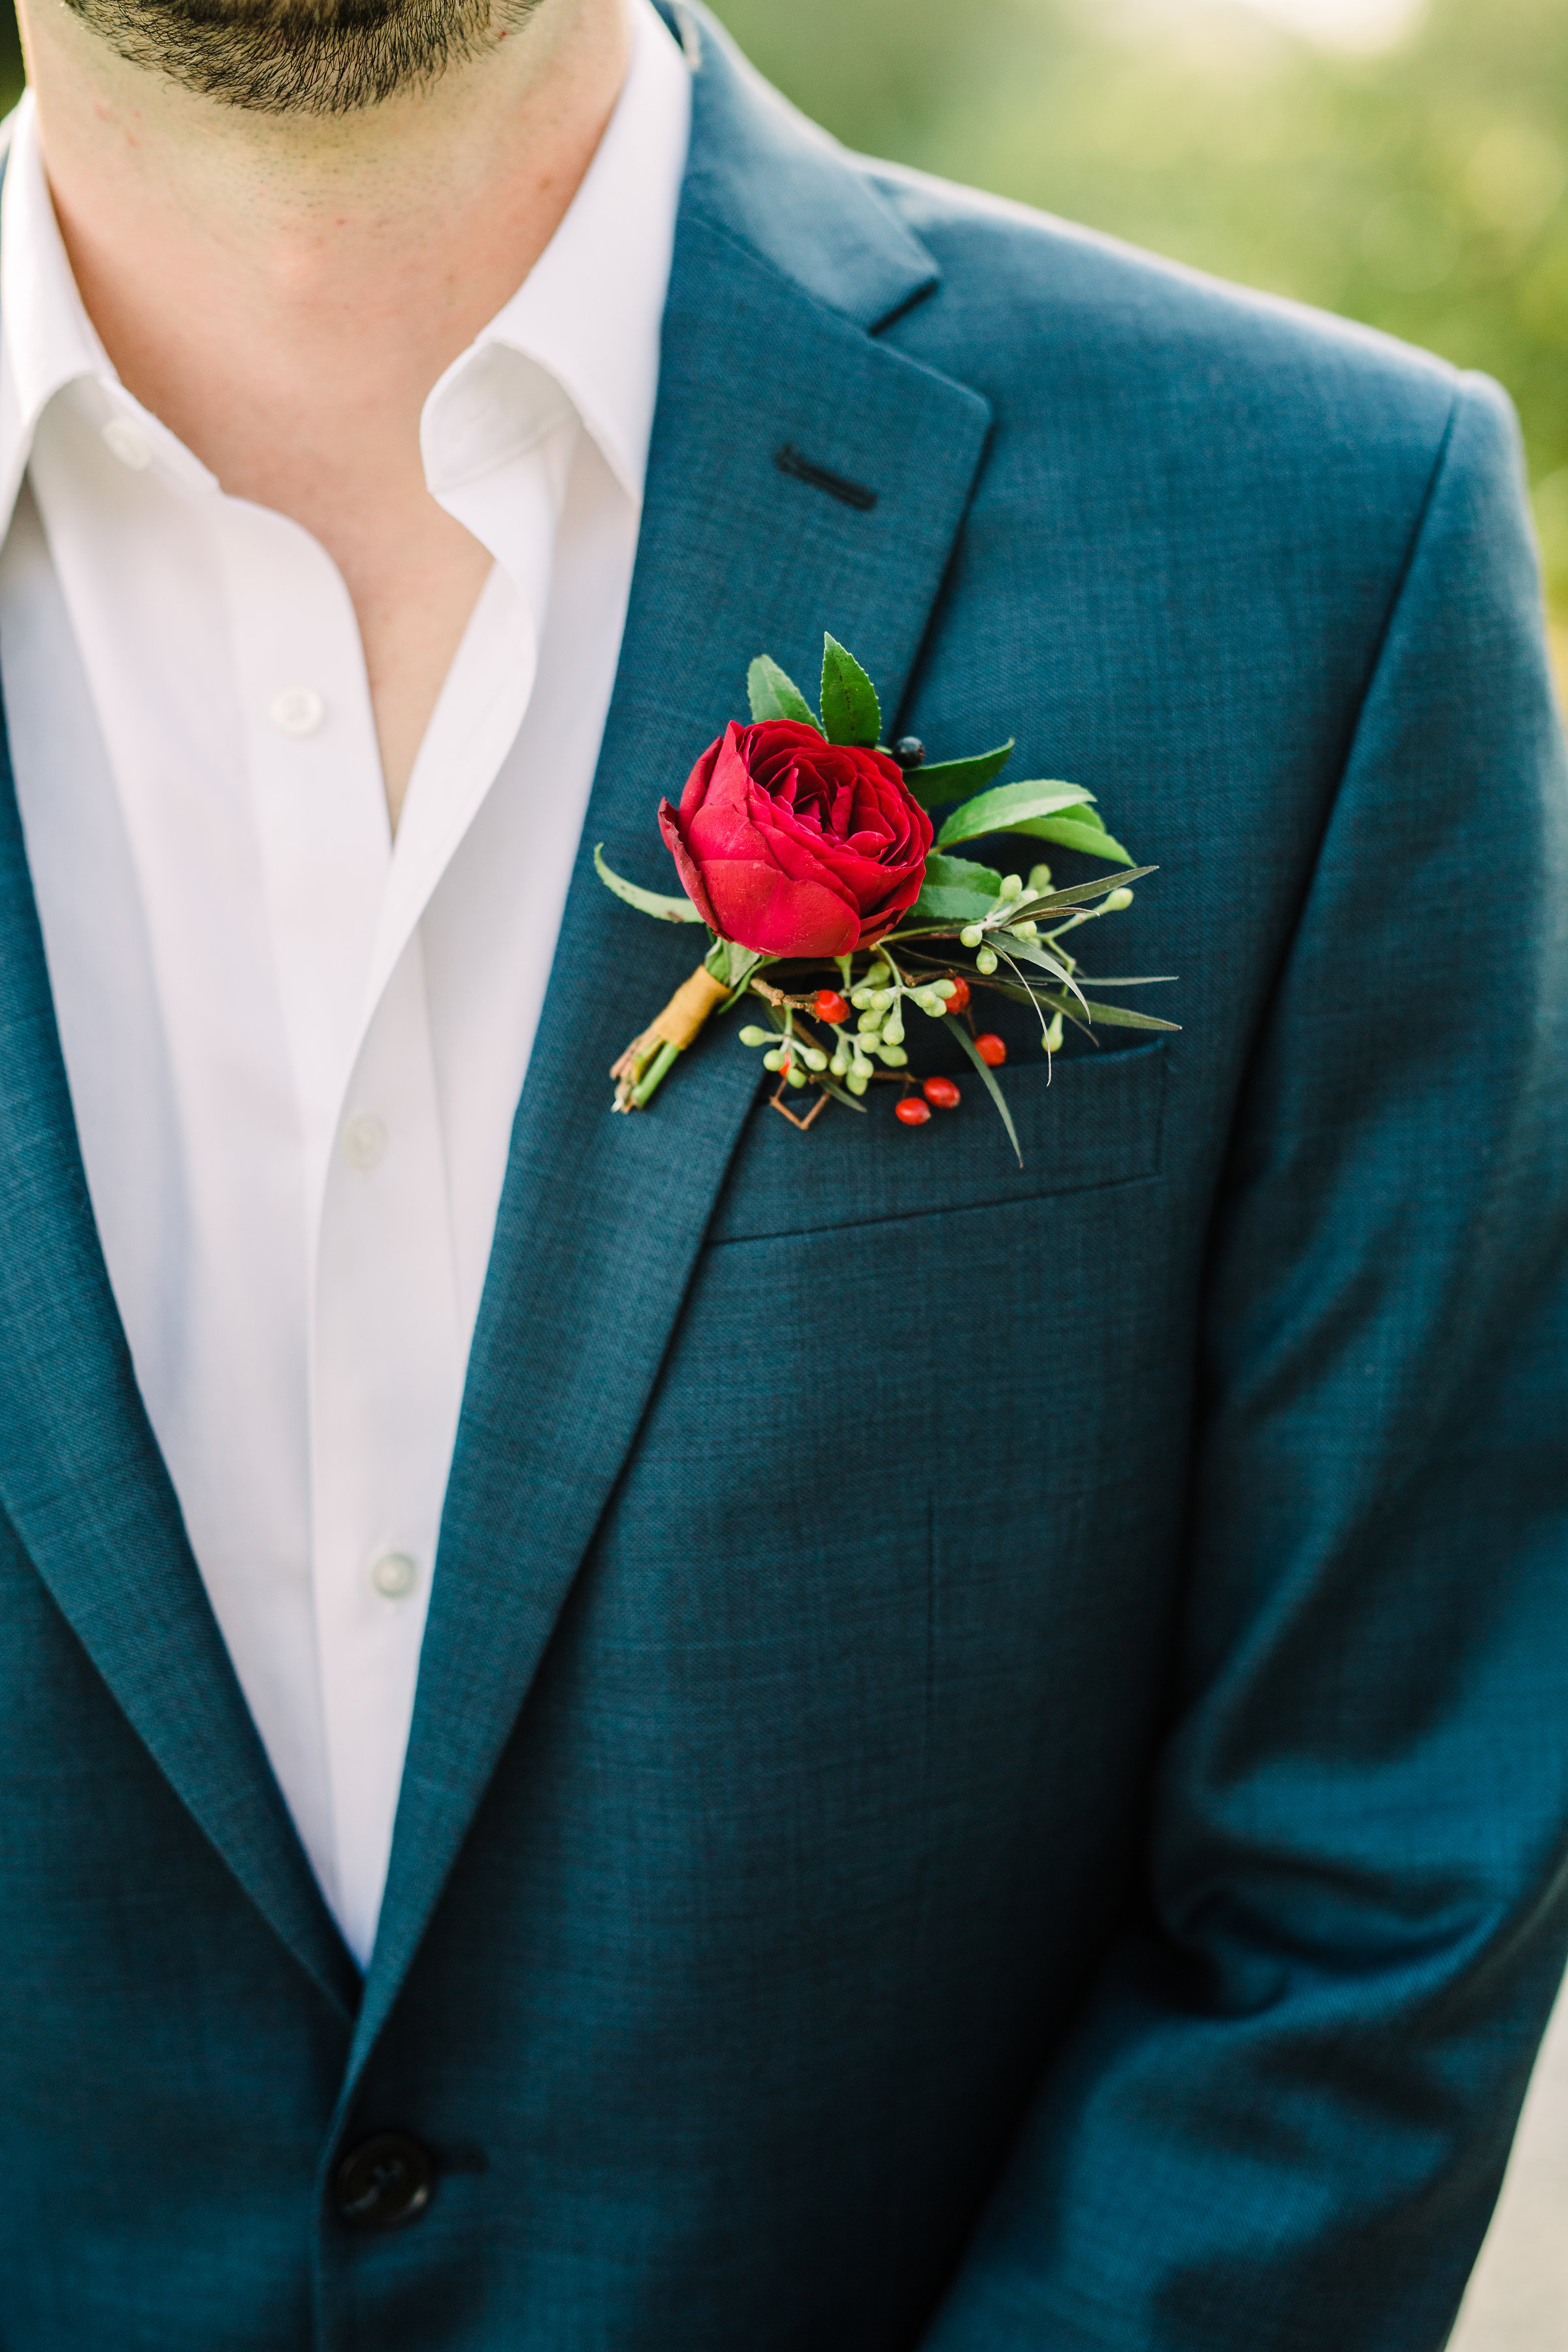 Simple burgundy and greenery groom's boutonniere